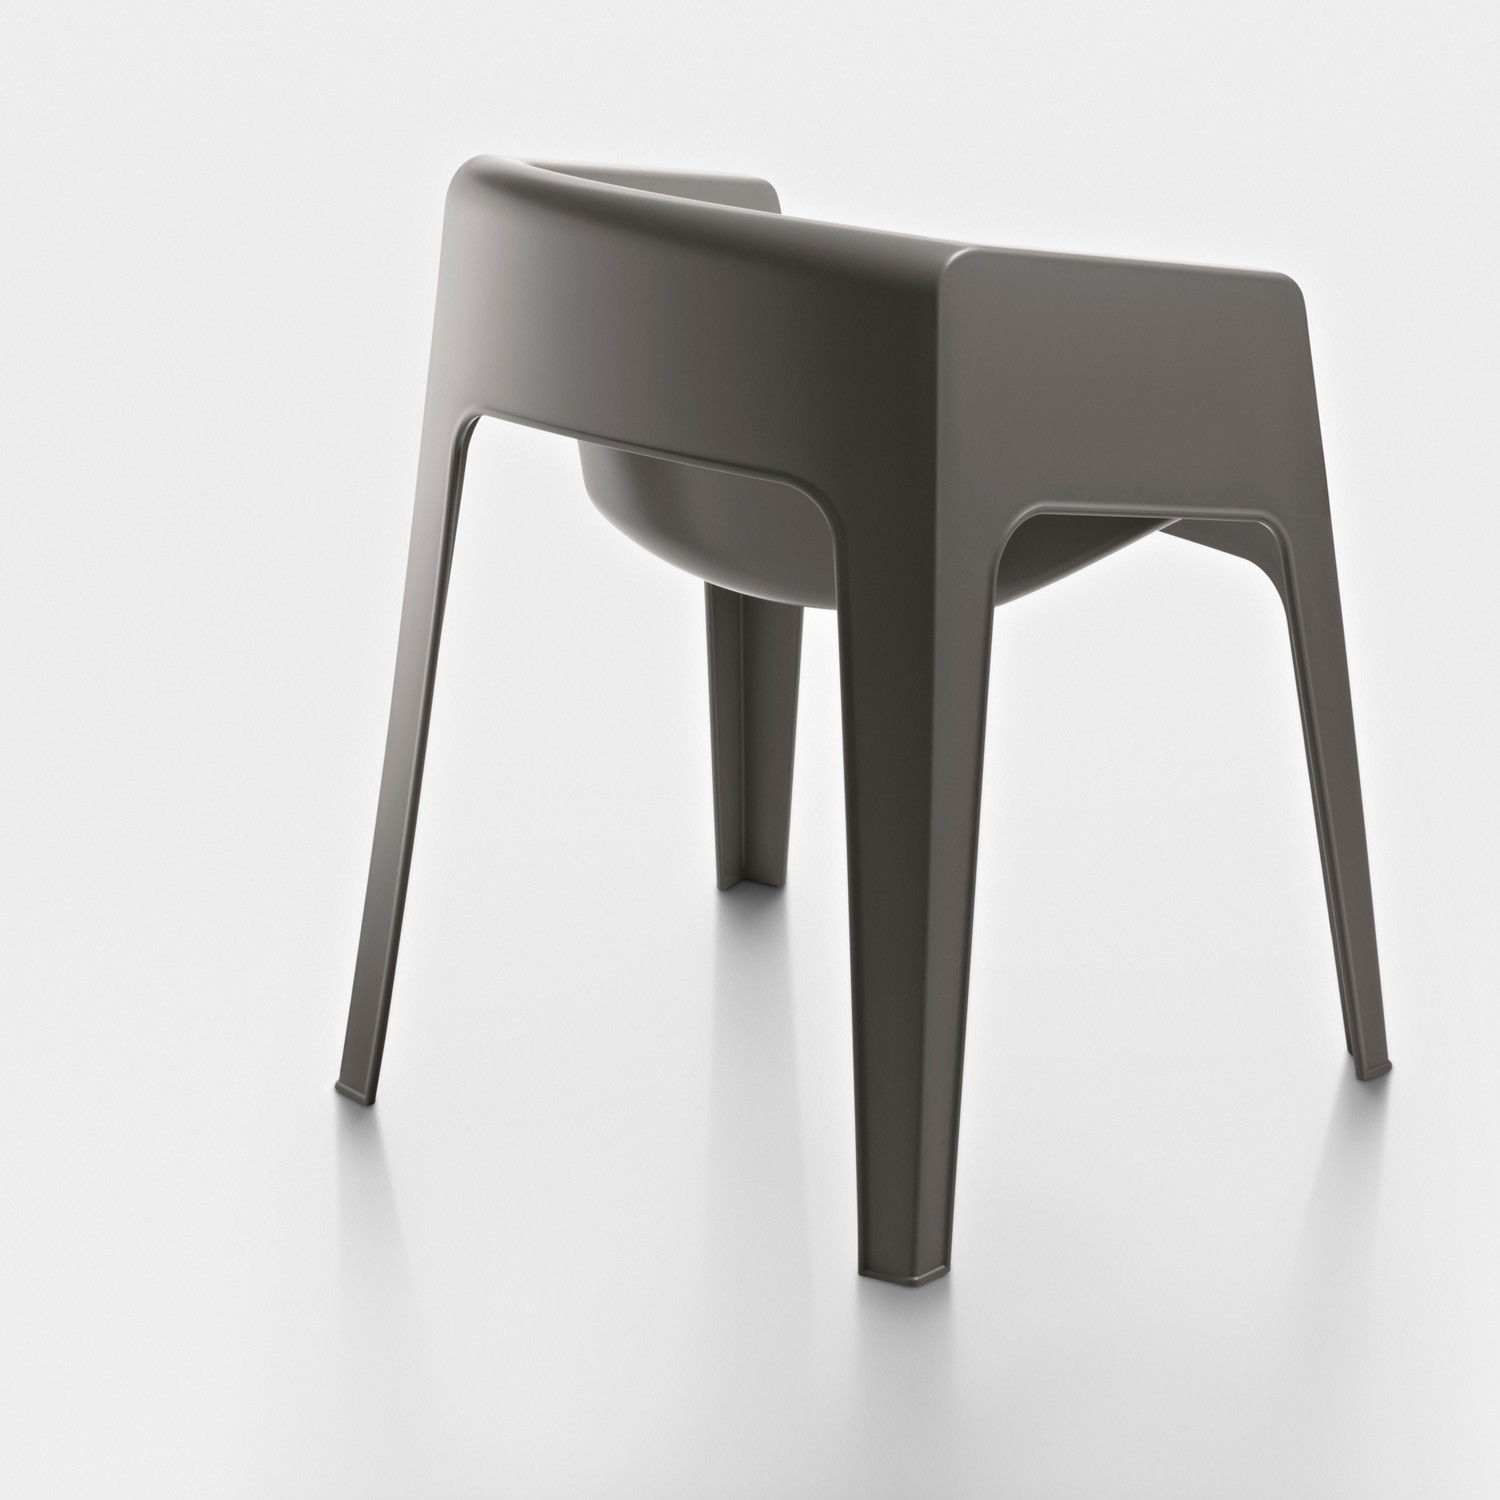 Tototo Seating